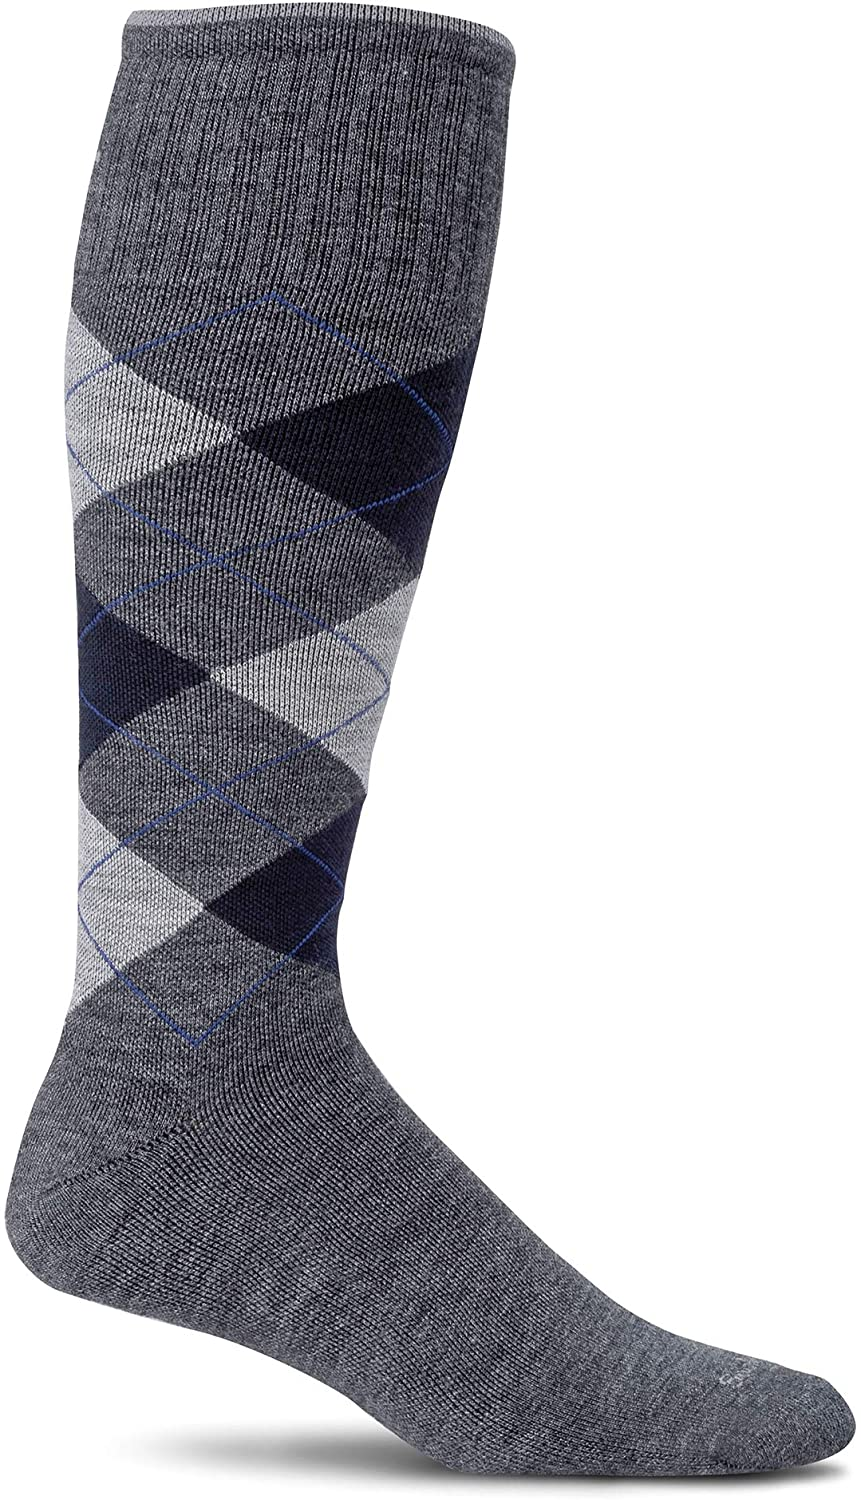 Sockwell Men's Argyle Circulator Moderate Graduated Compression Sock in Charcoal from the side